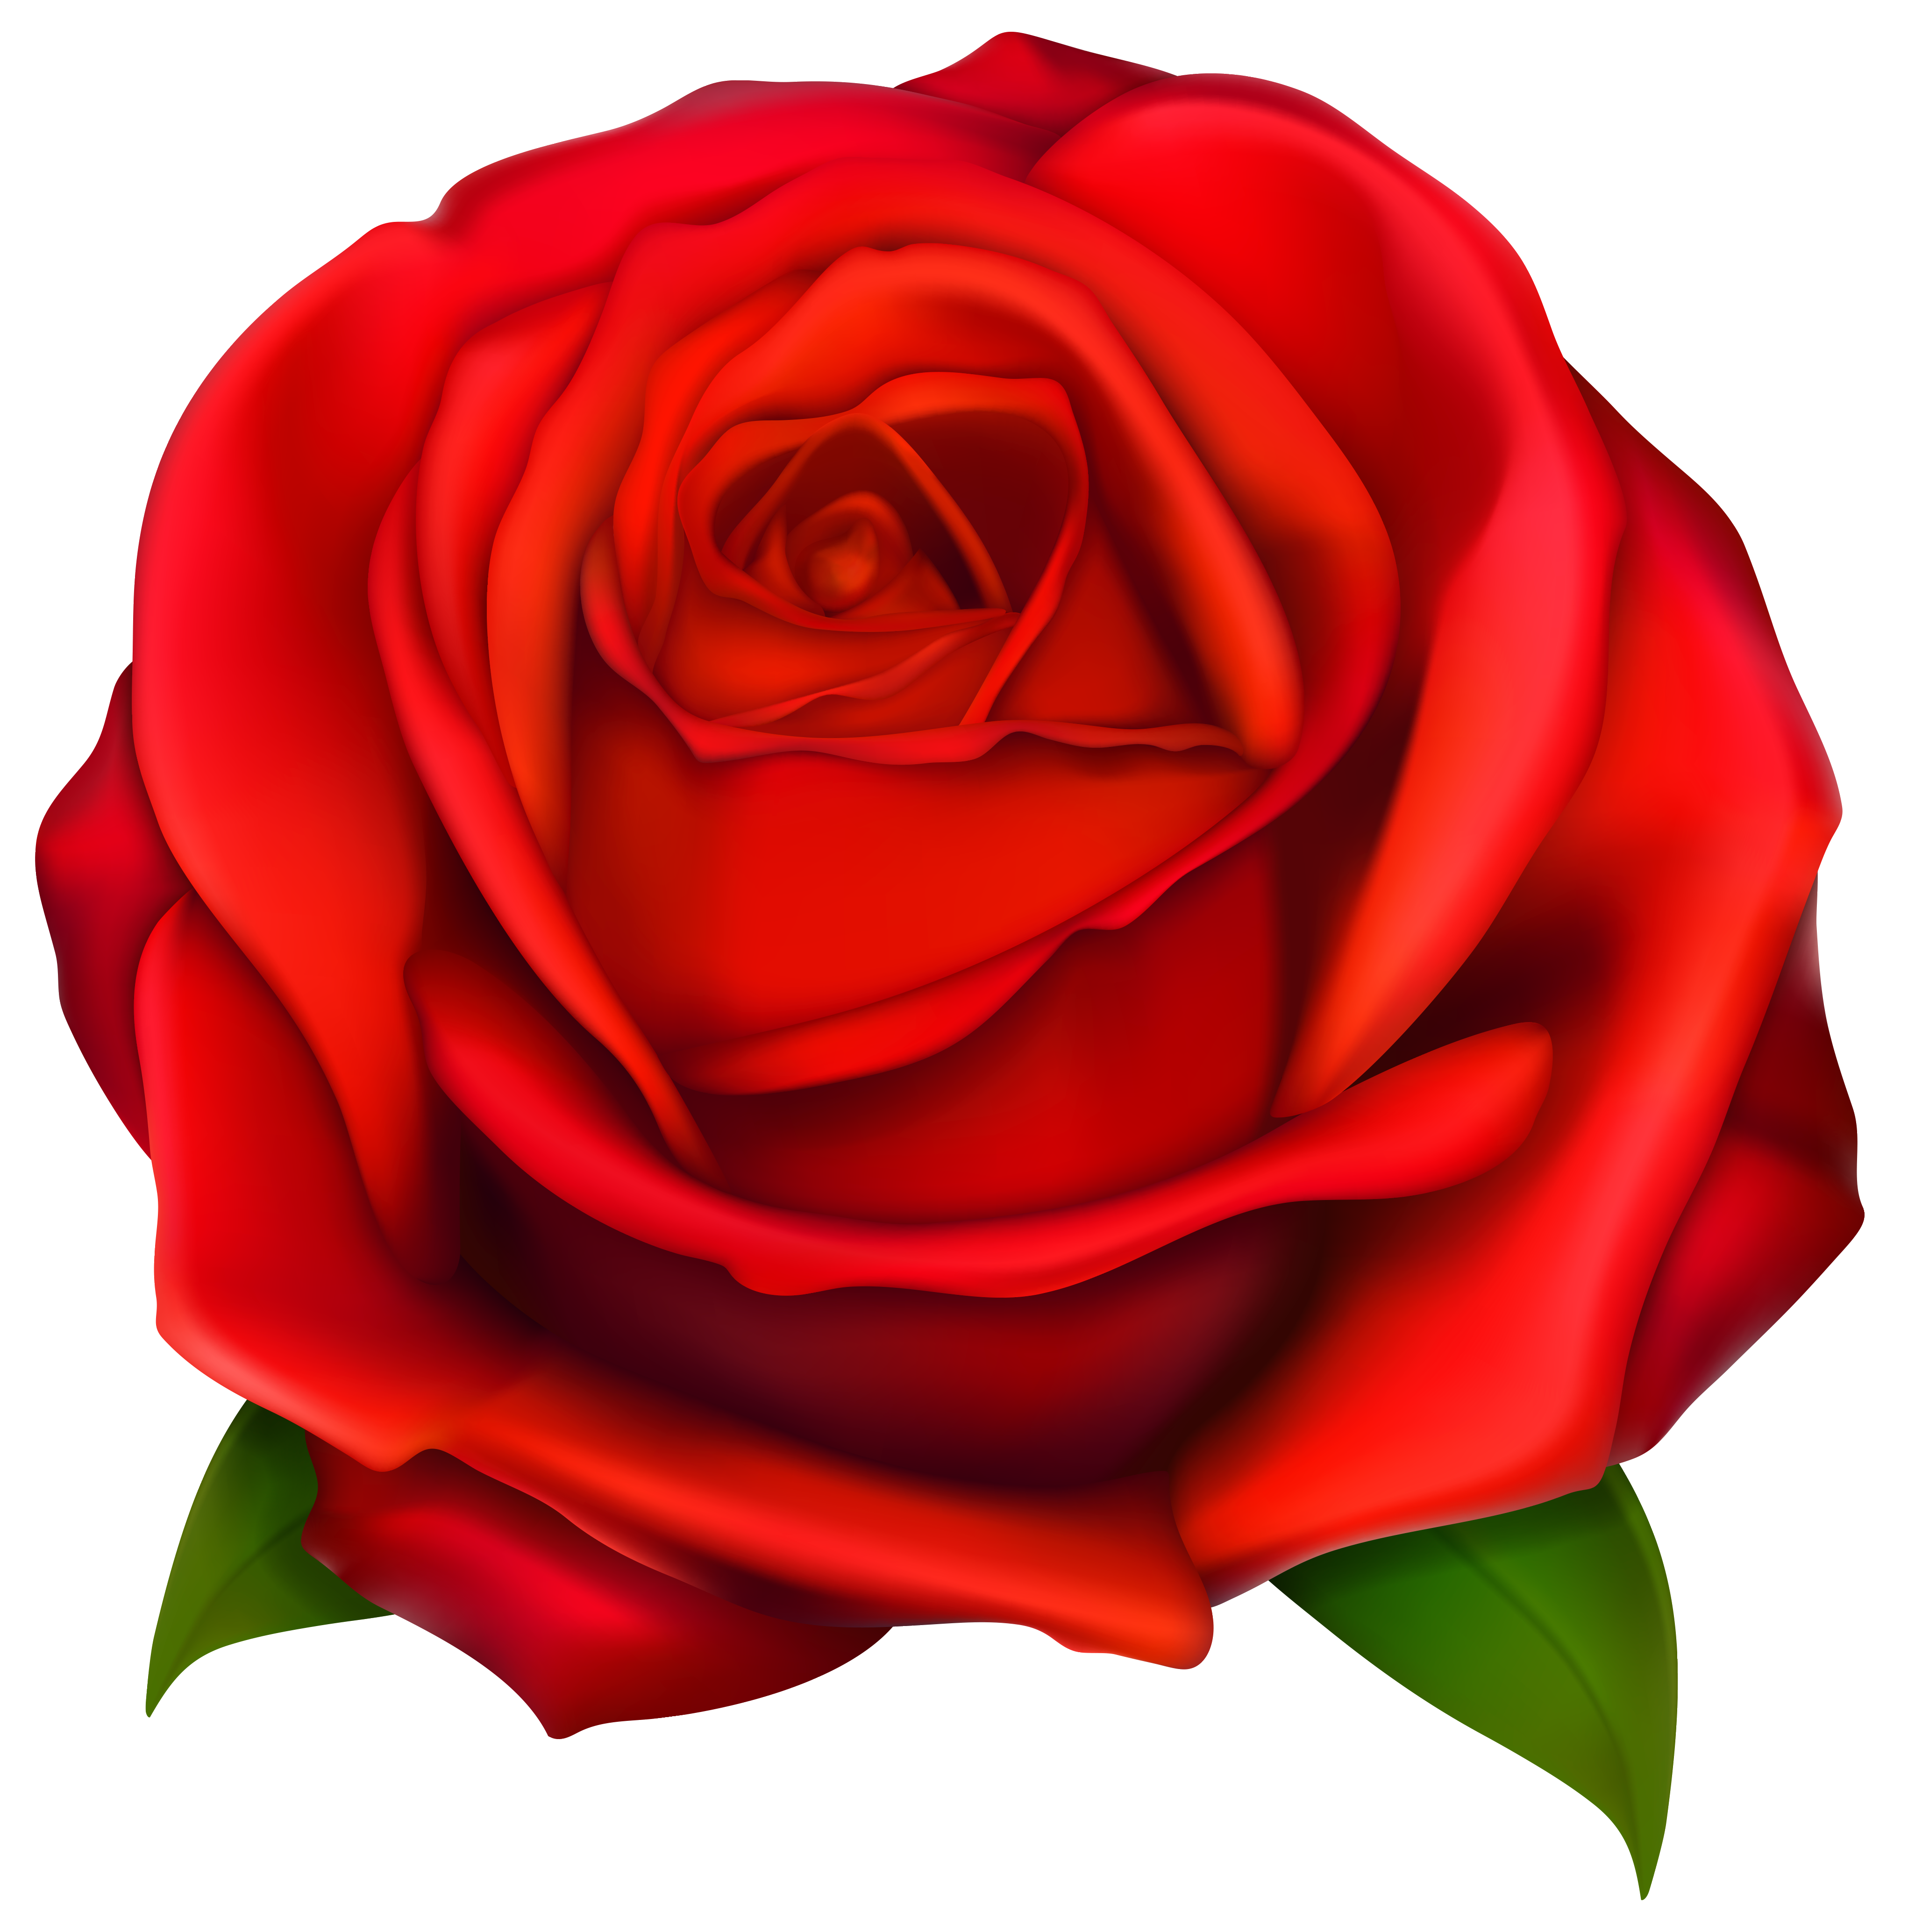 Roses Free Rose Clipart Public Domain Fl-Roses free rose clipart public domain flower clip art images and graphics 4 - Clipartix-15